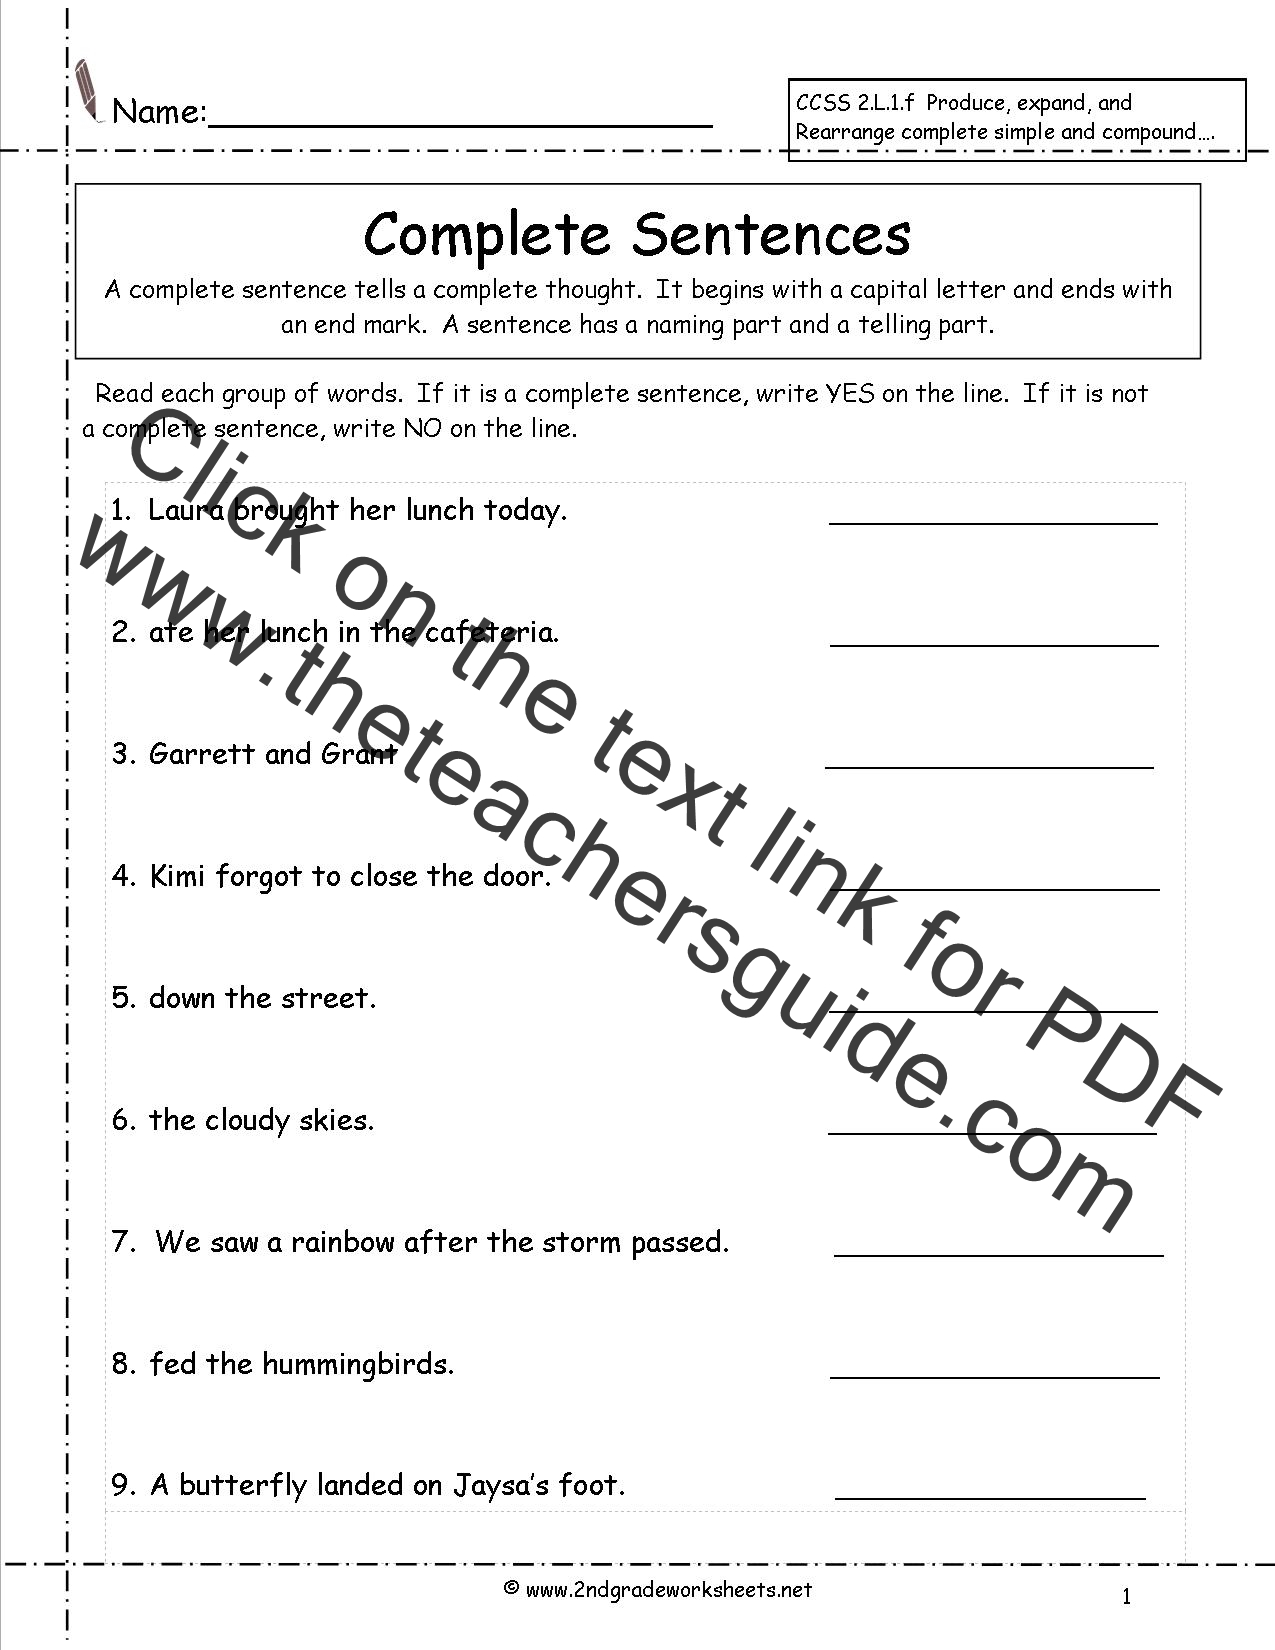 Worksheets Sentence Correction Worksheets second grade sentences worksheets ccss 2 l 1 f complete worksheets